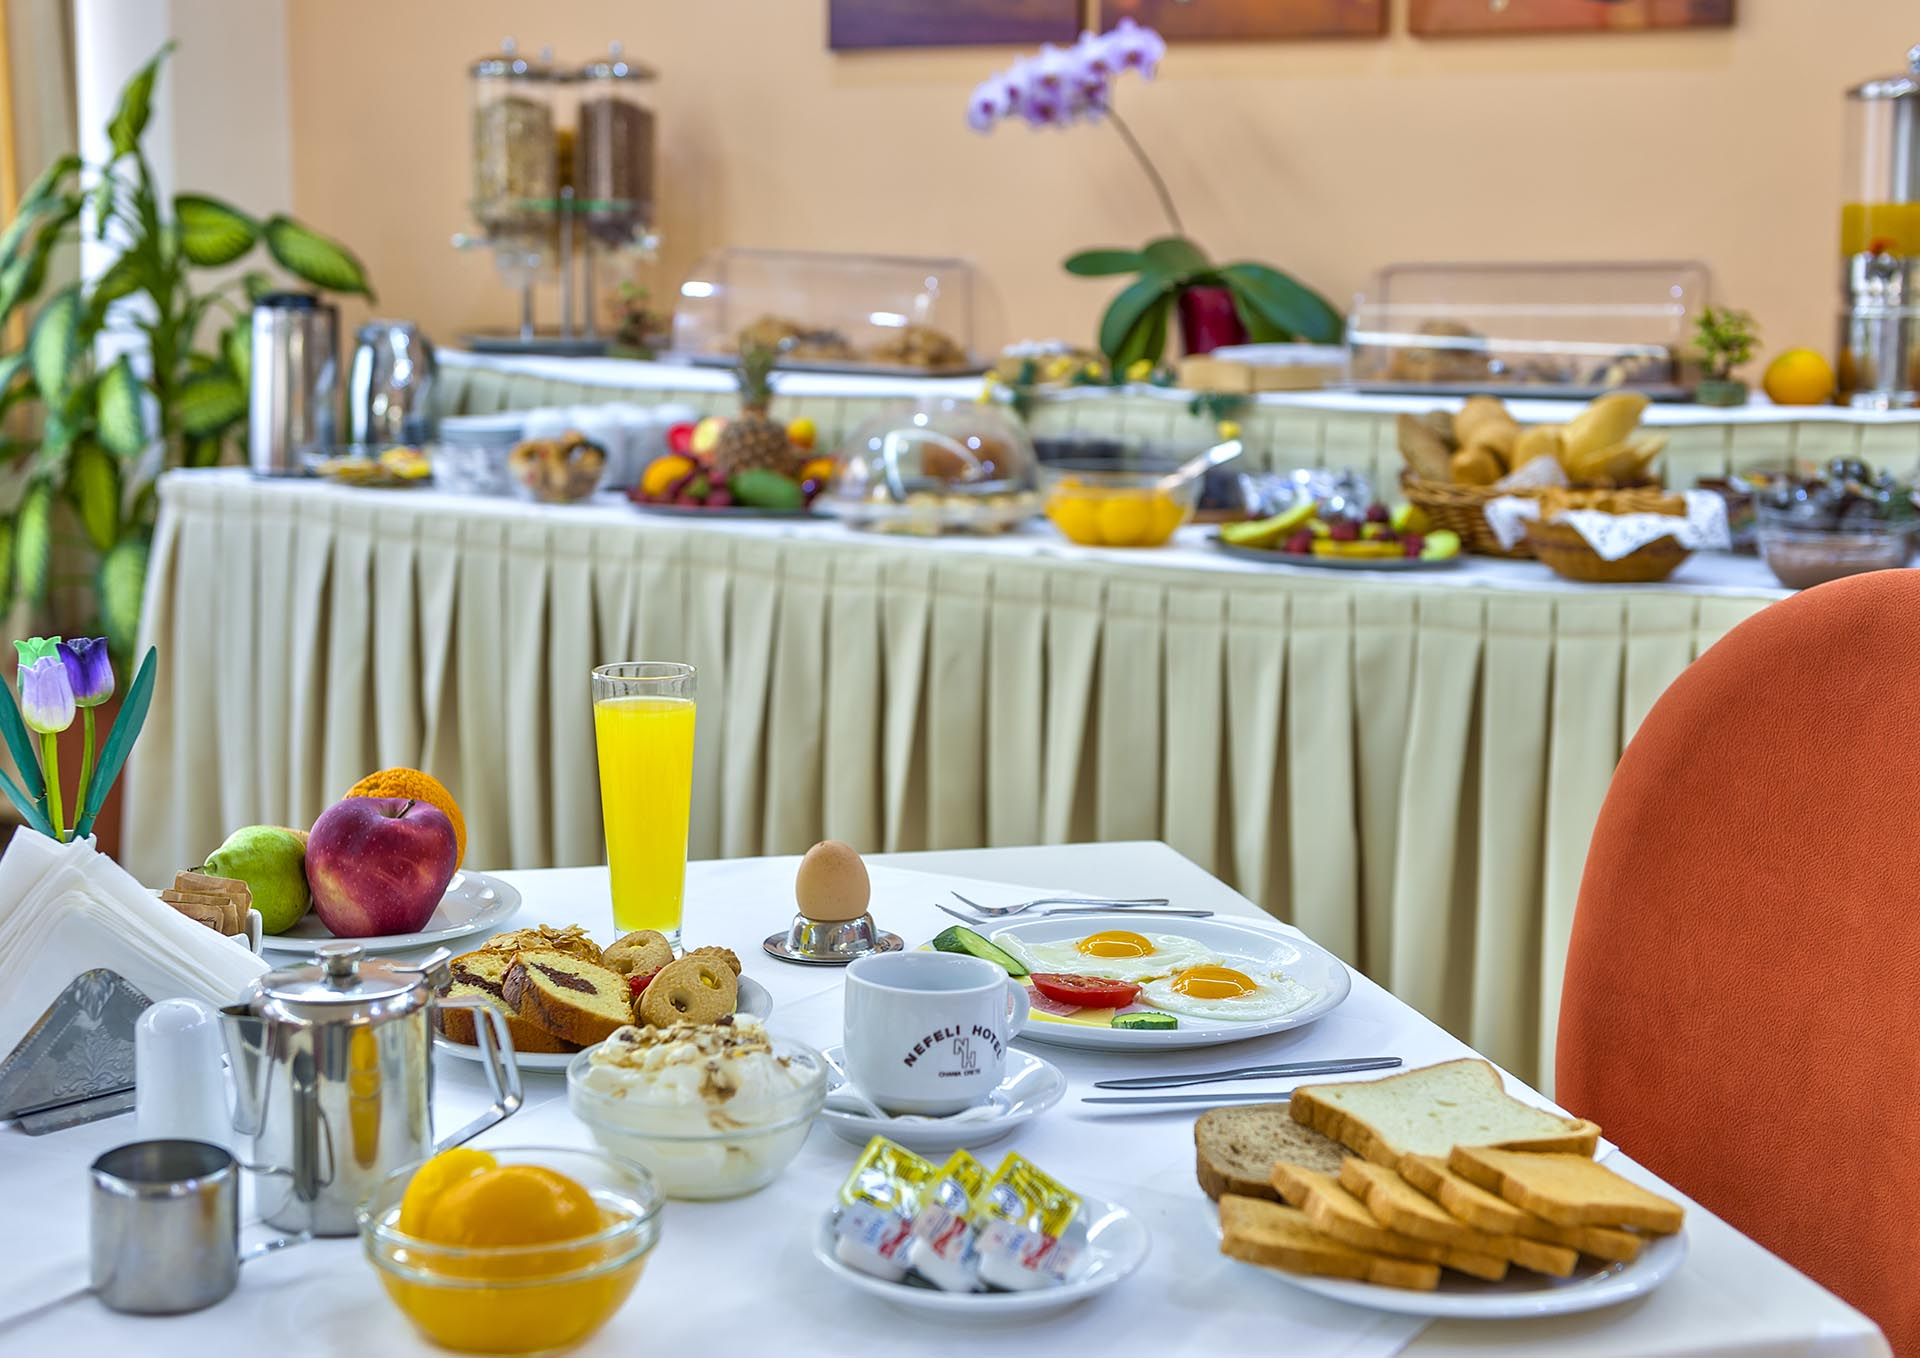 Nefeli Hotel's breakfast buffet